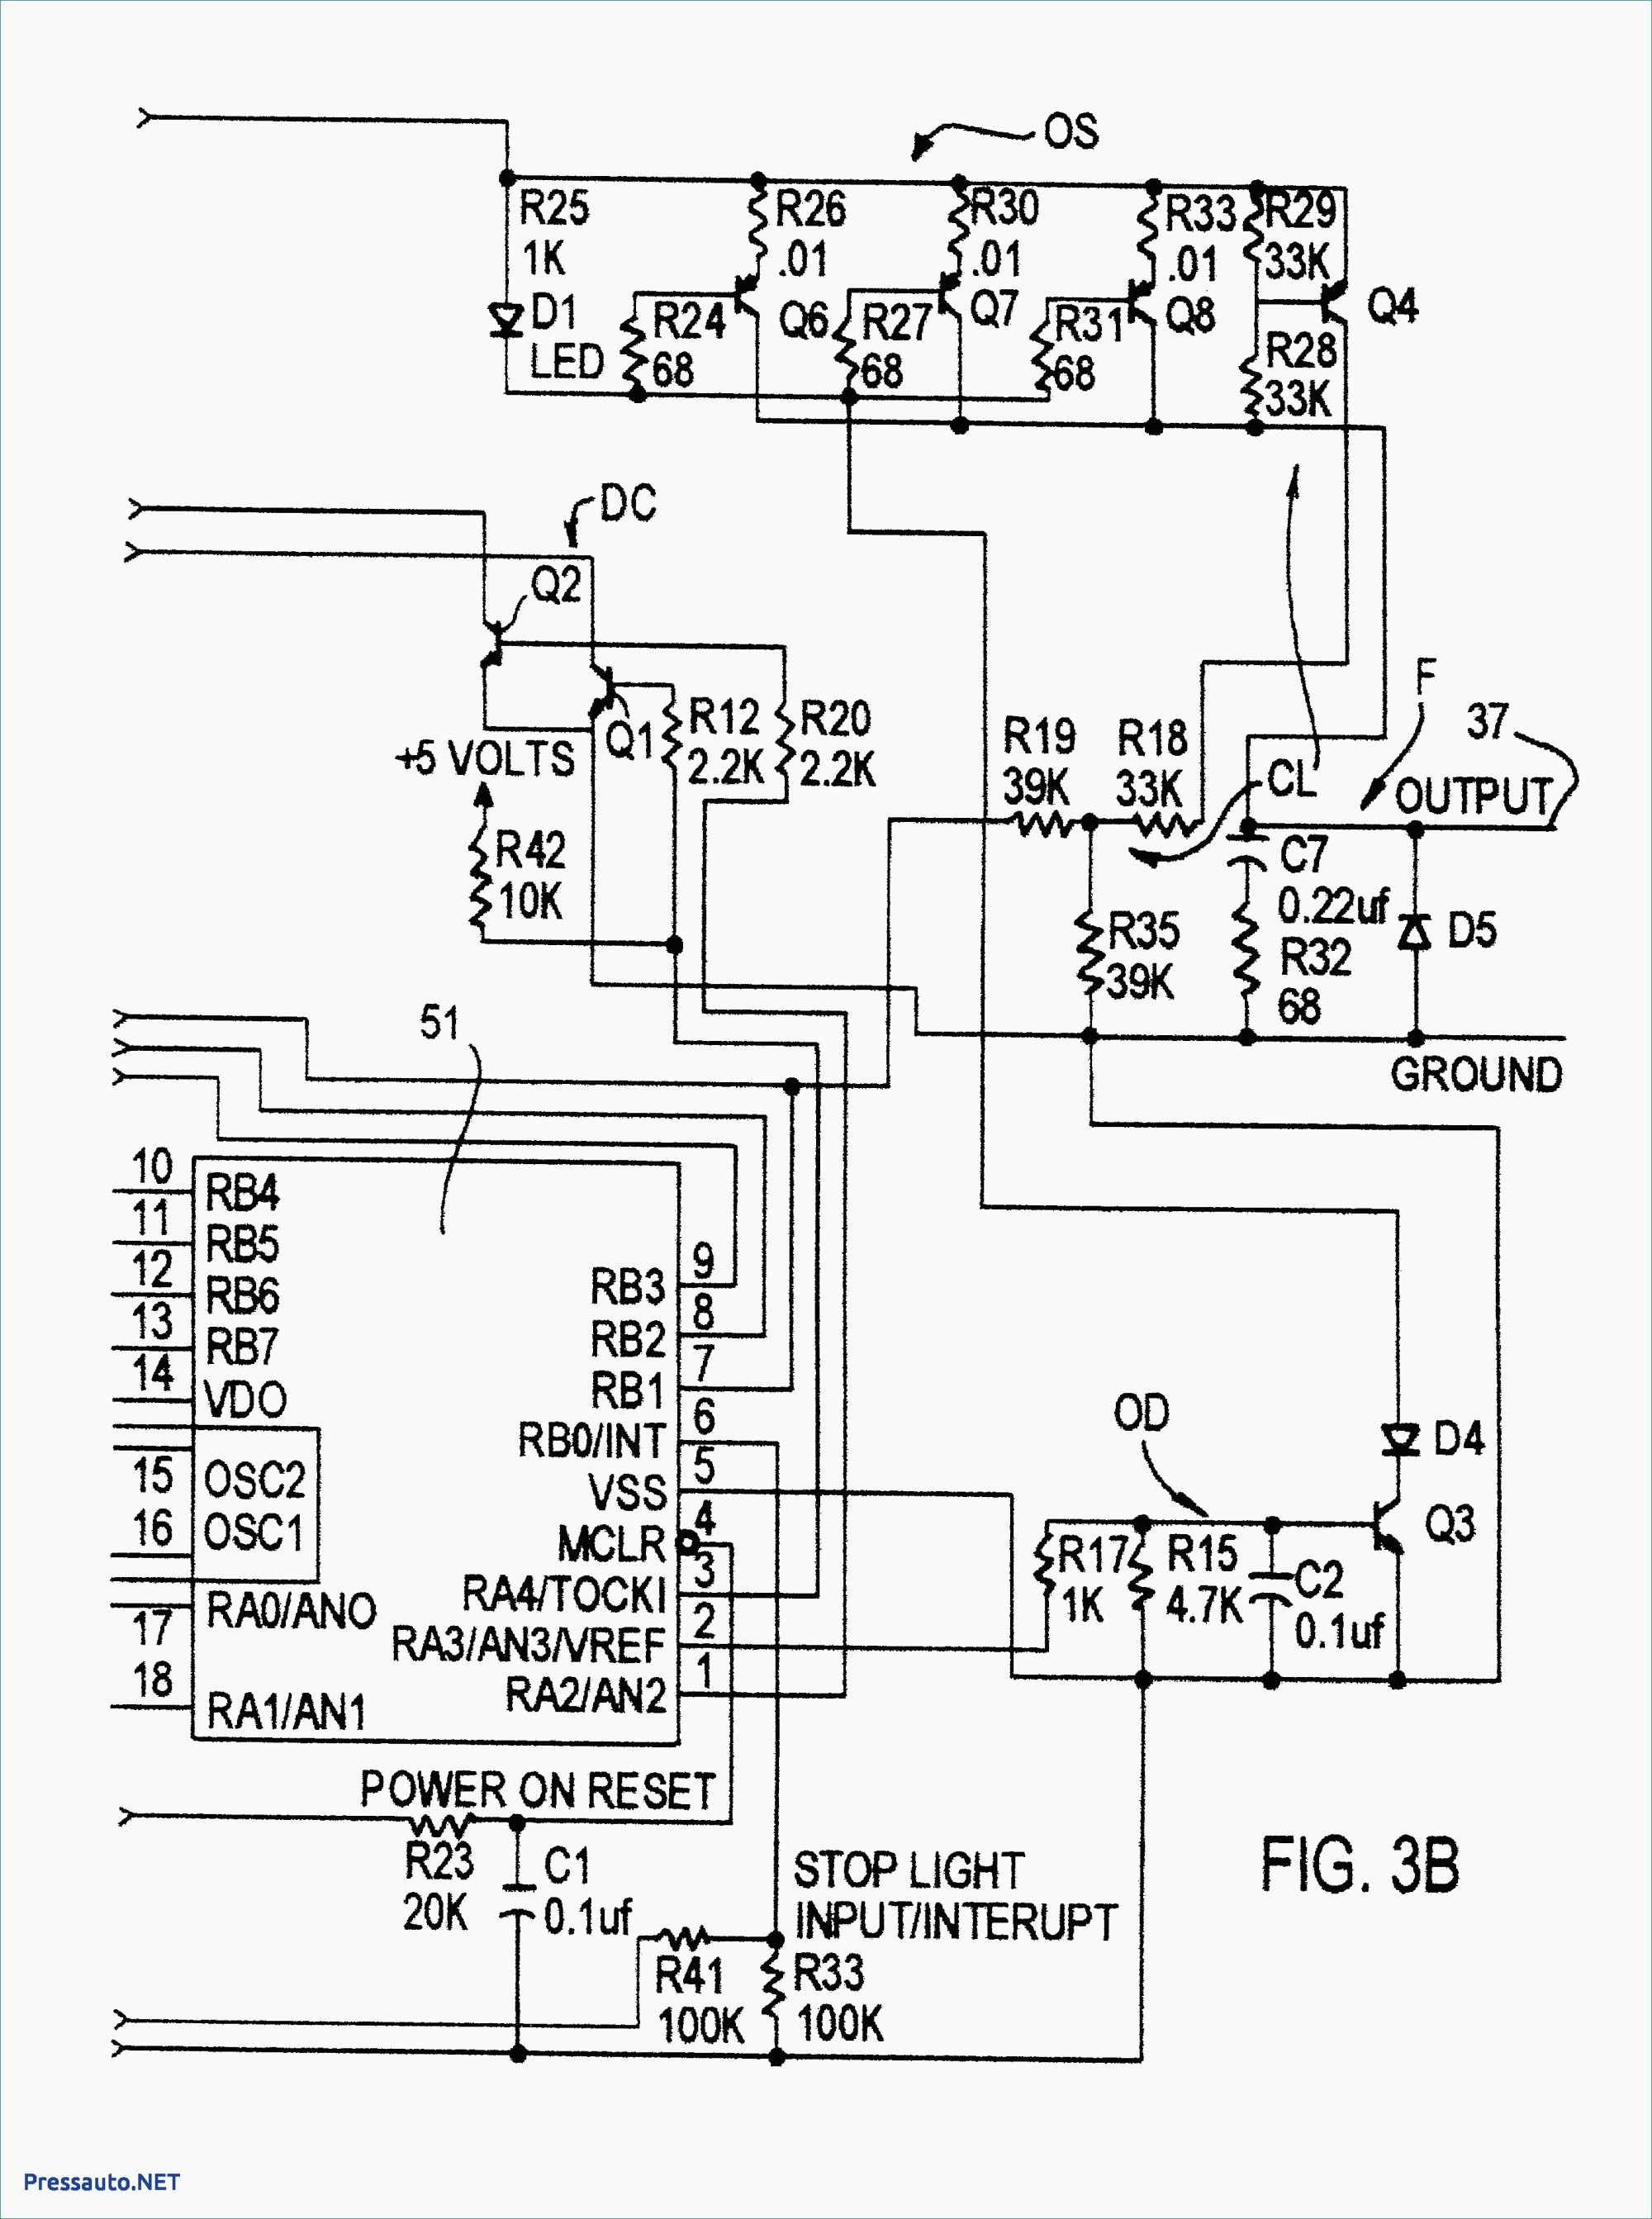 hight resolution of gm parts diagrams exploded views 2003 gmc parts diagram radio wiring on 1962 c10 chevy truck